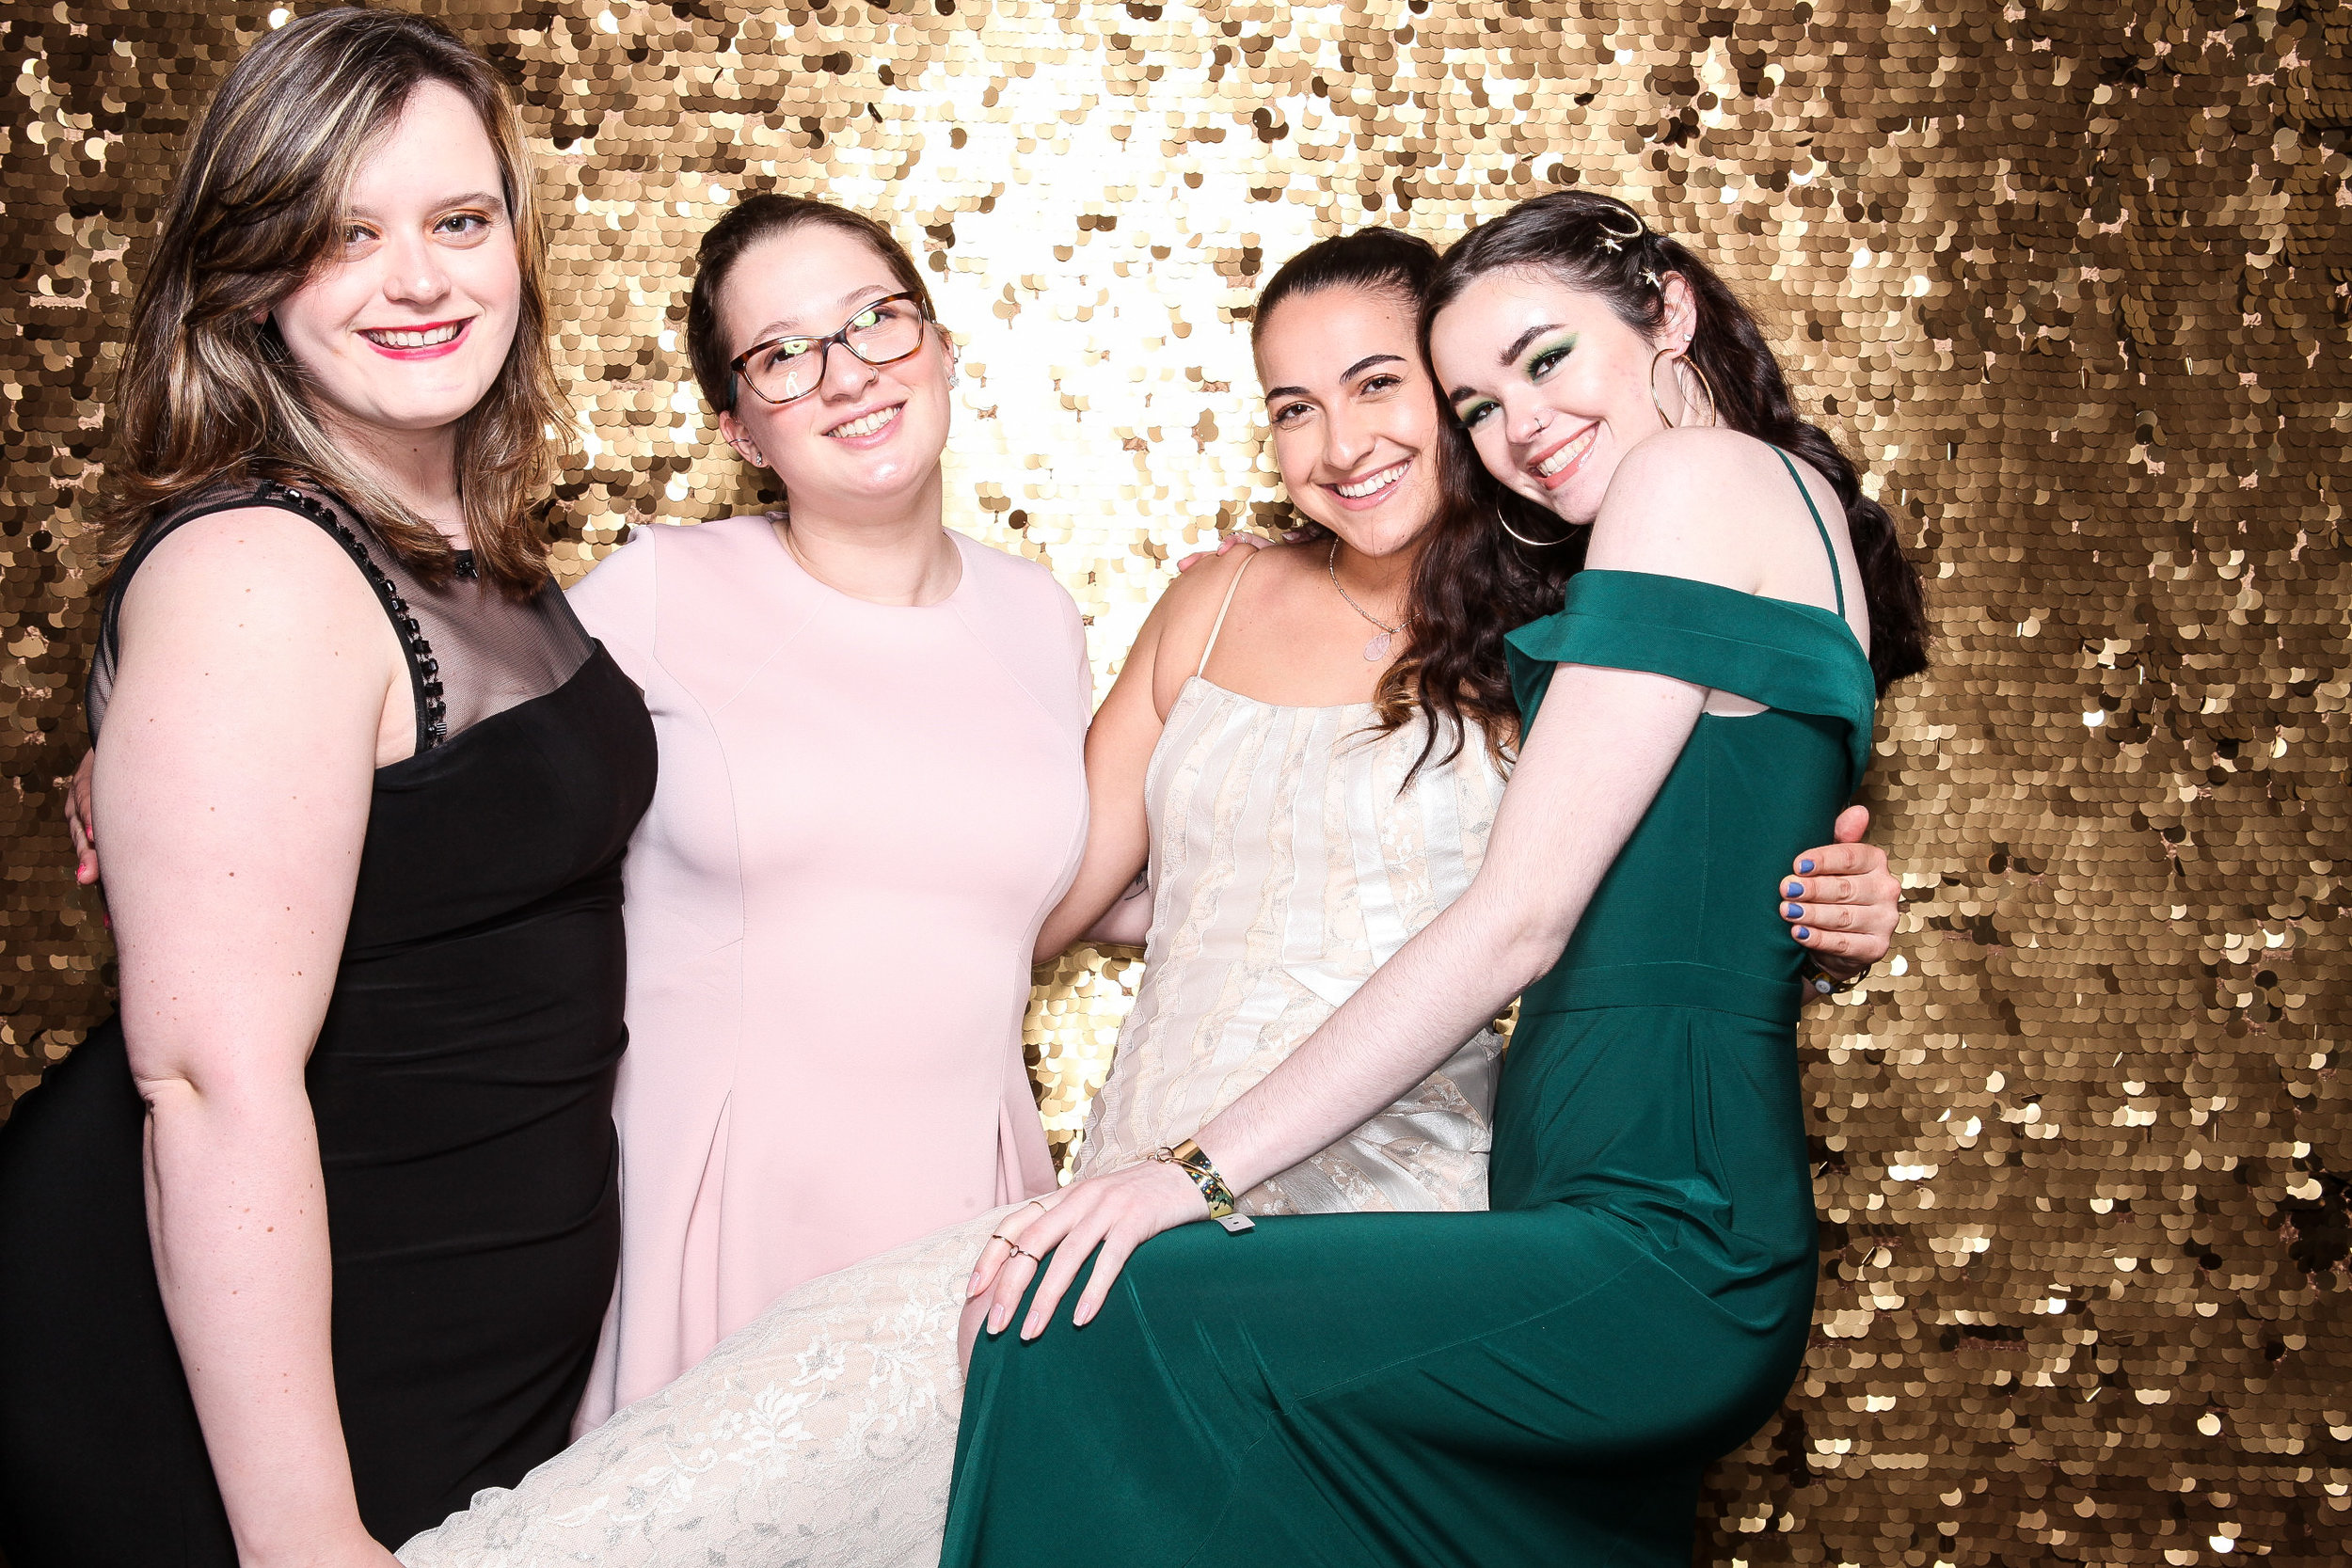 20190503_Adelphi_Senior_Formal-021.jpg